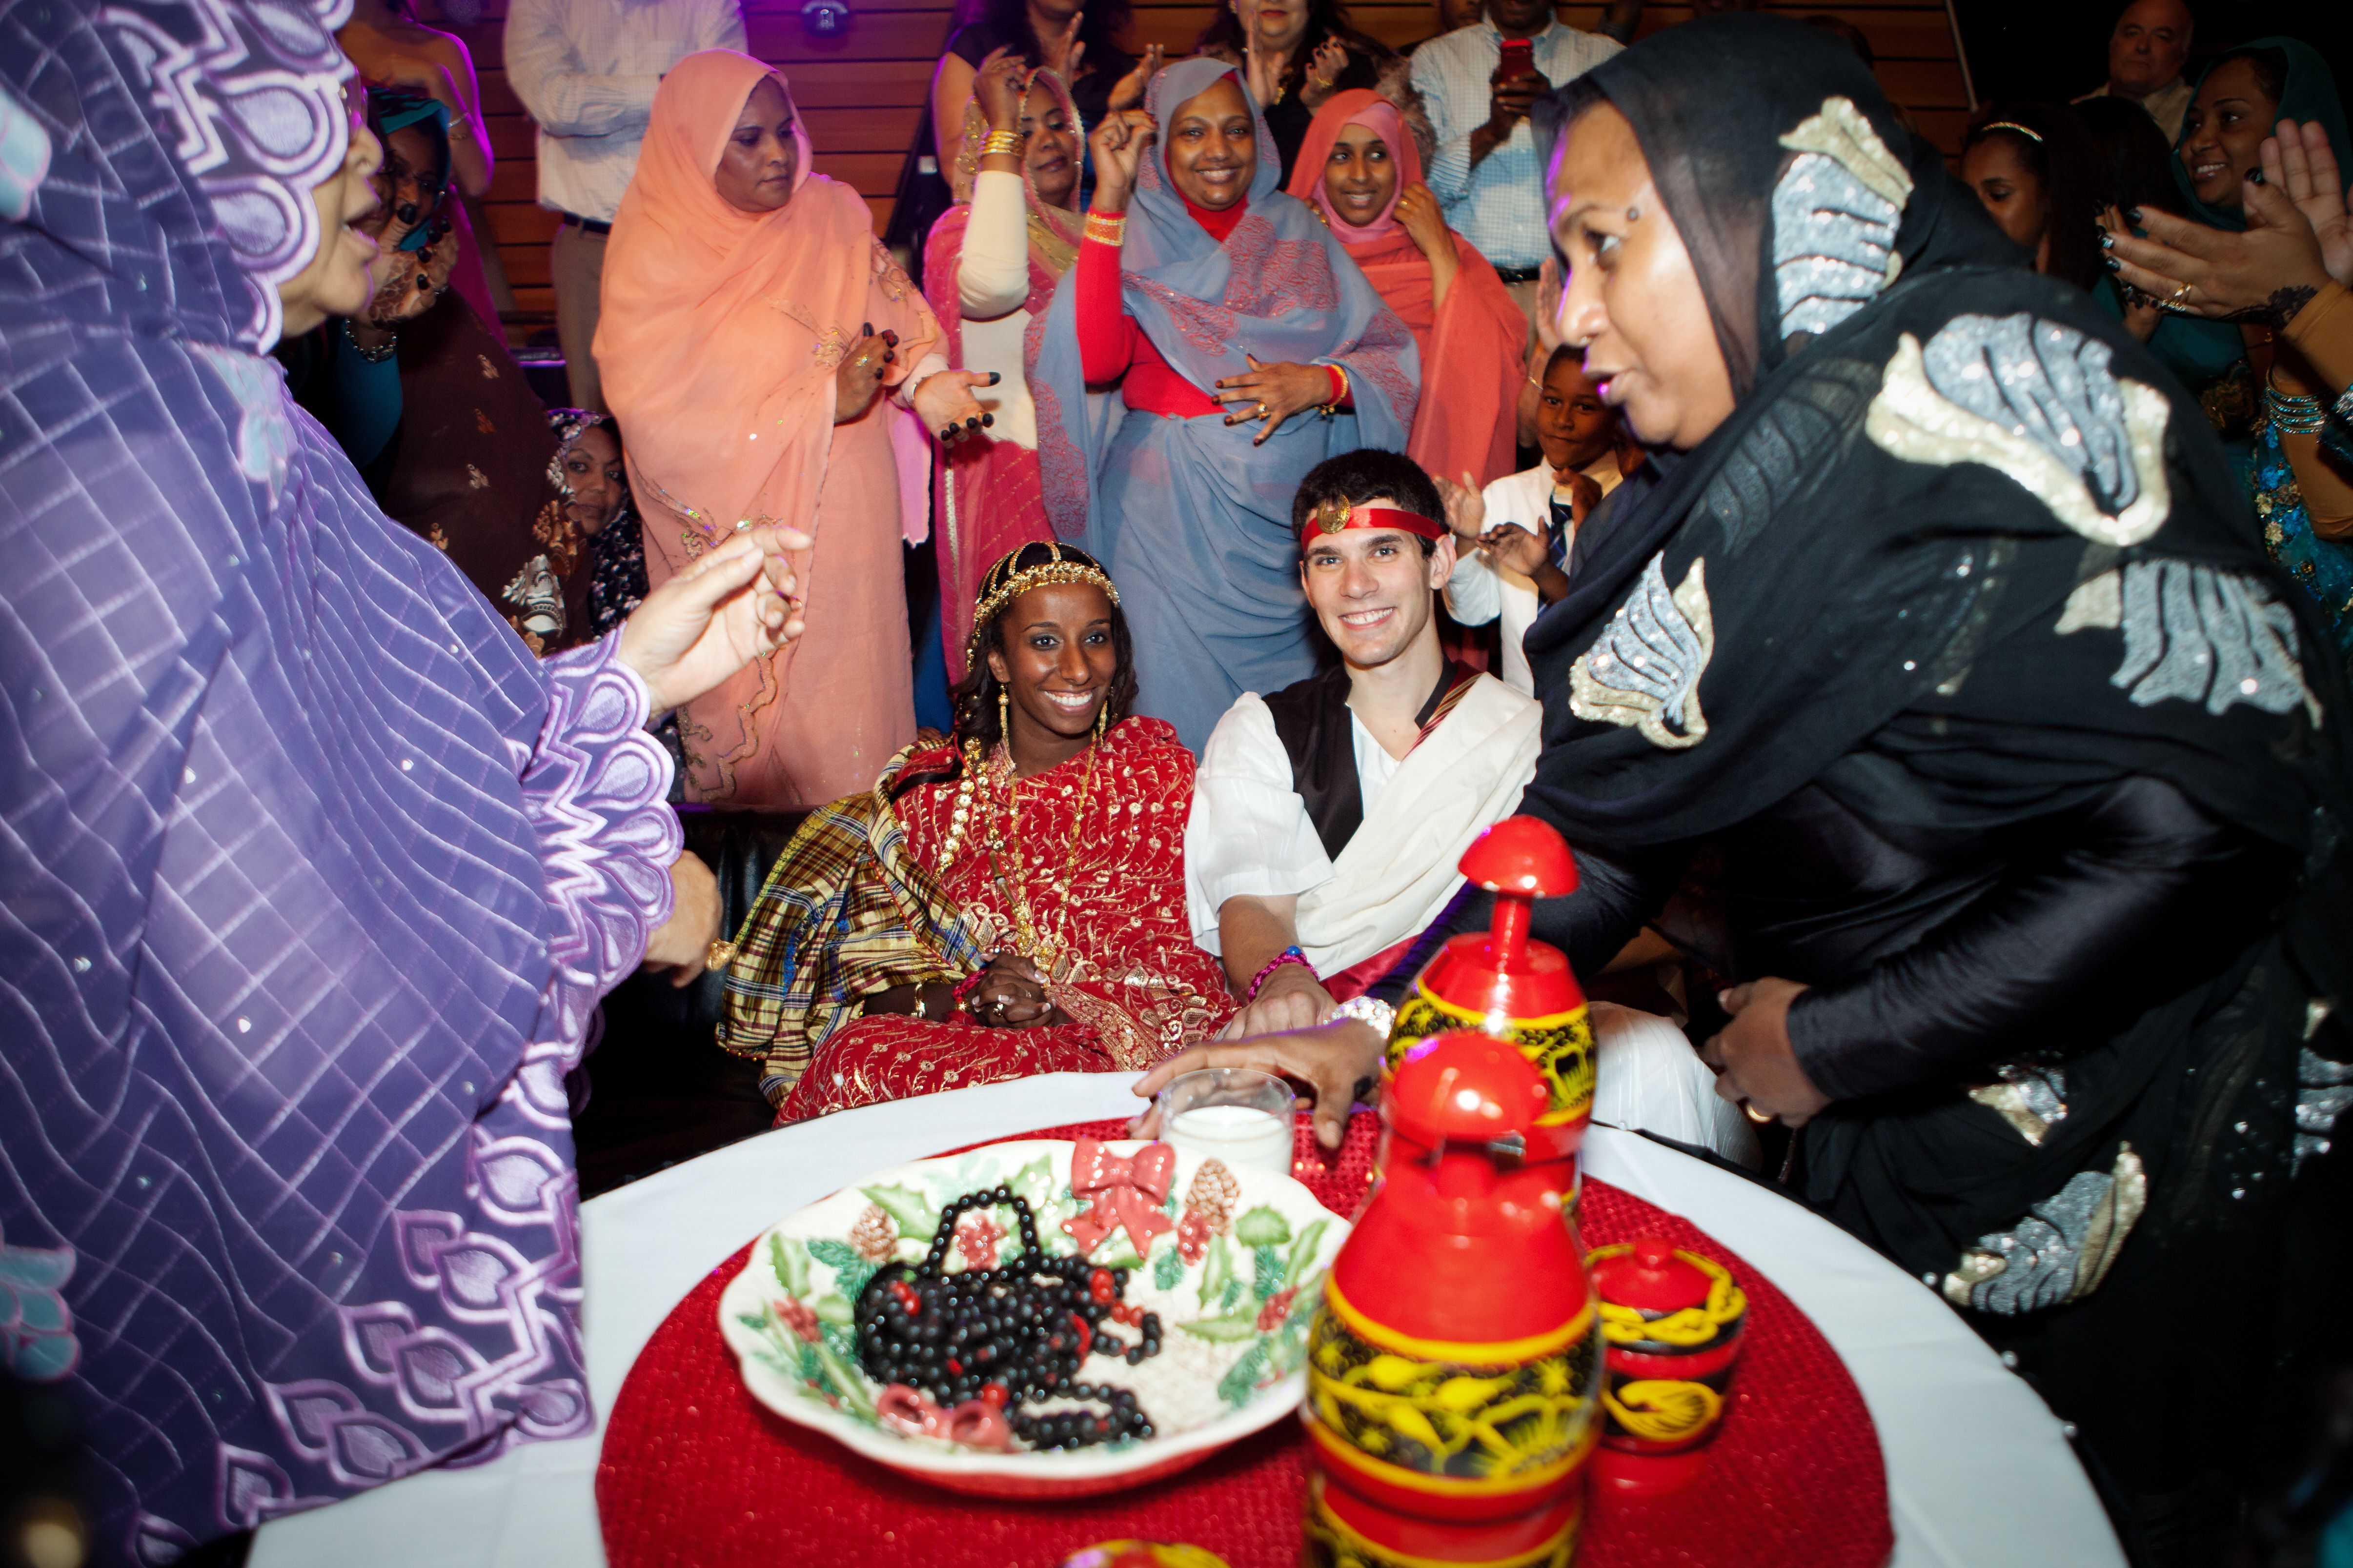 Sudanese wedding rituals and traditions - African Weddings From All Over